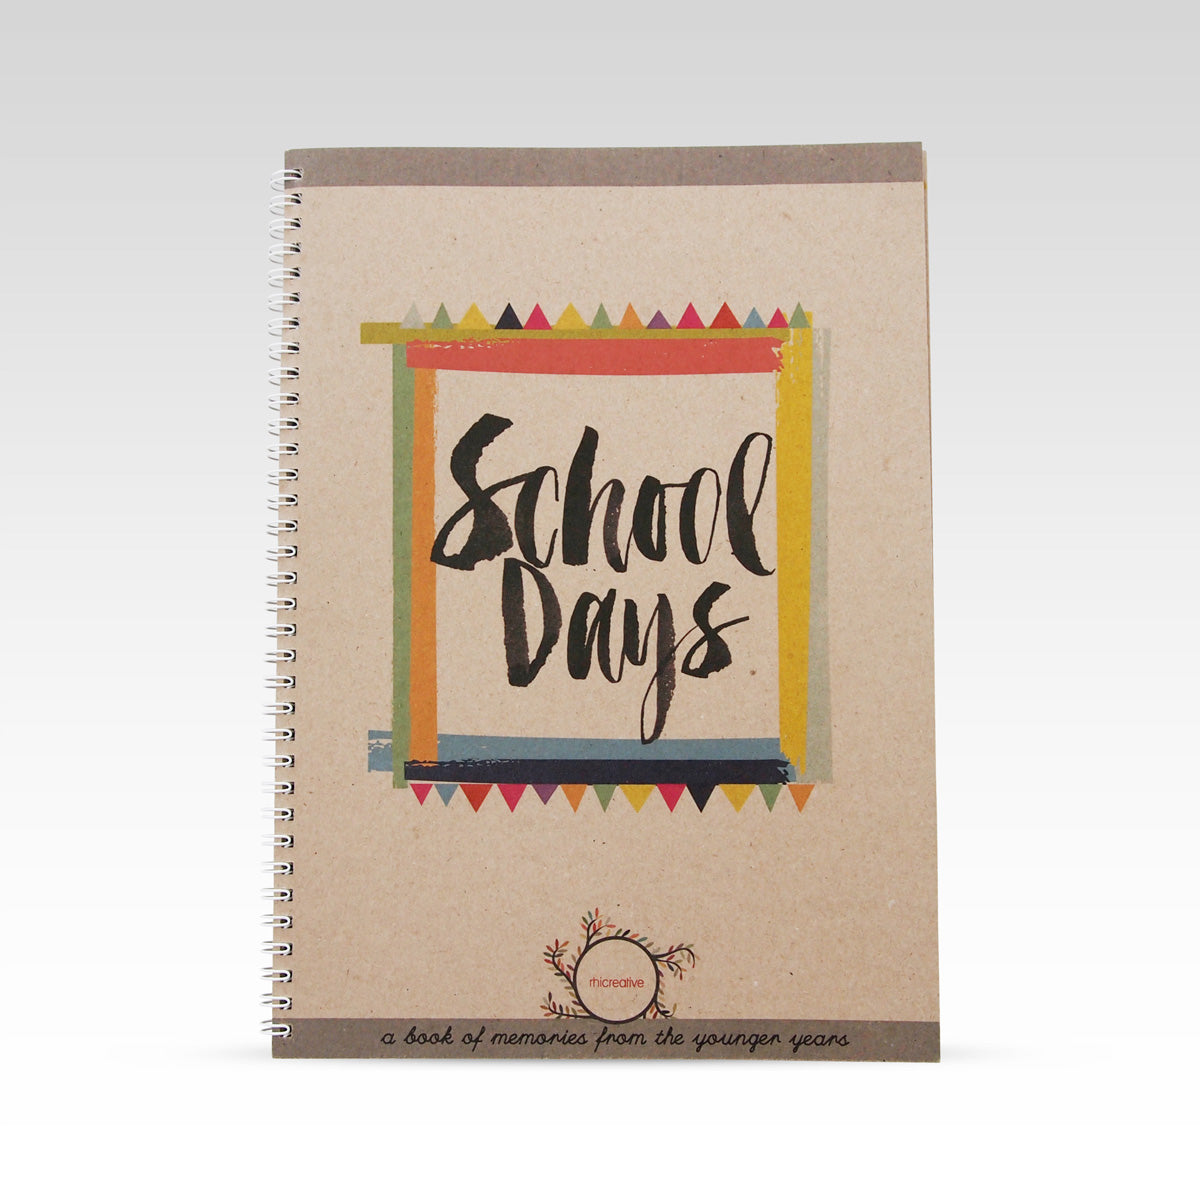 School Days Book from Rhicreative